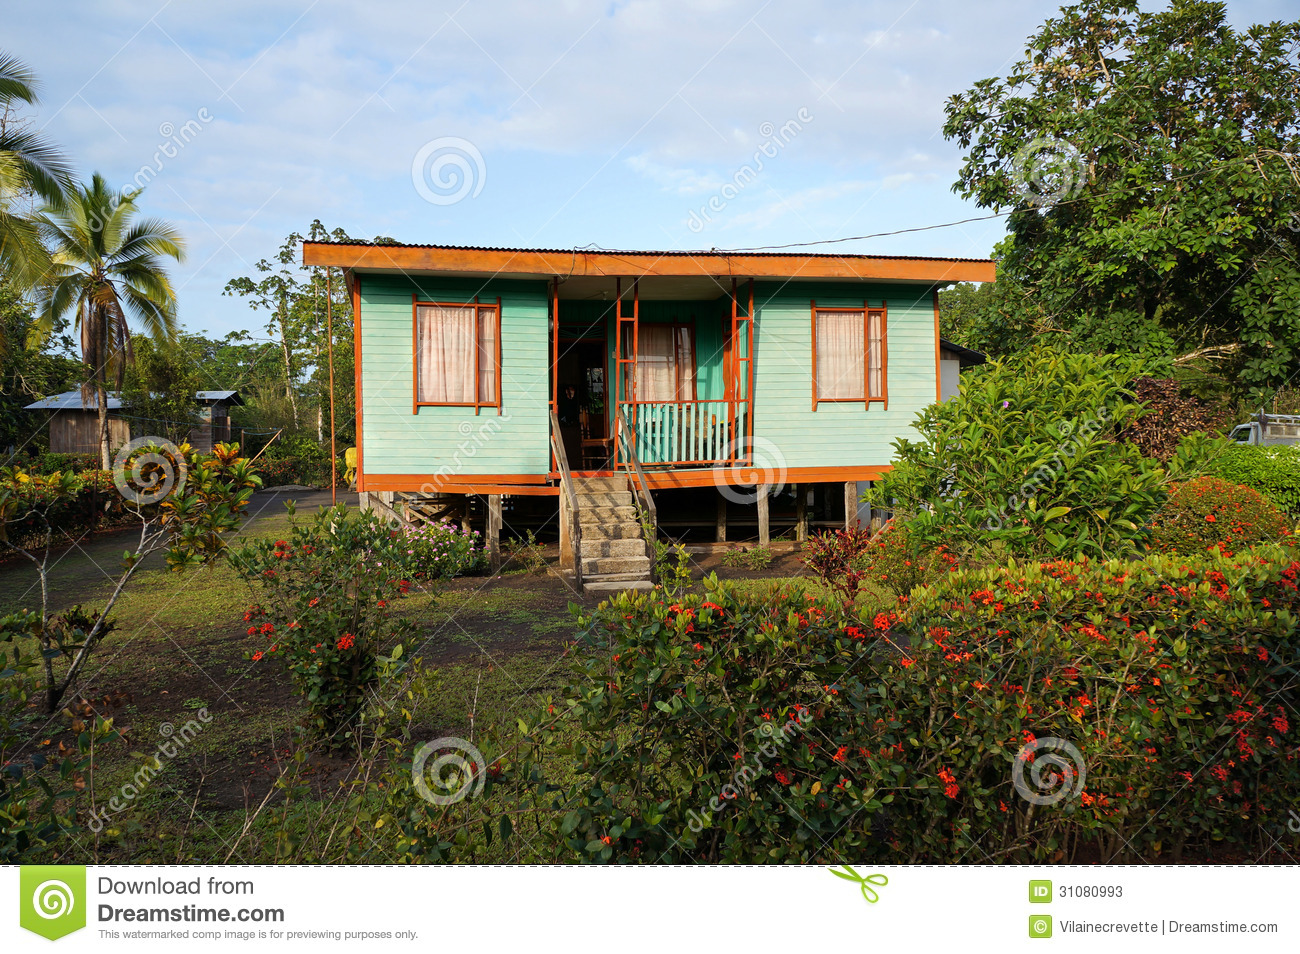 Caribbean house in costa rica stock photos image 31080993 for Costa rica house plans